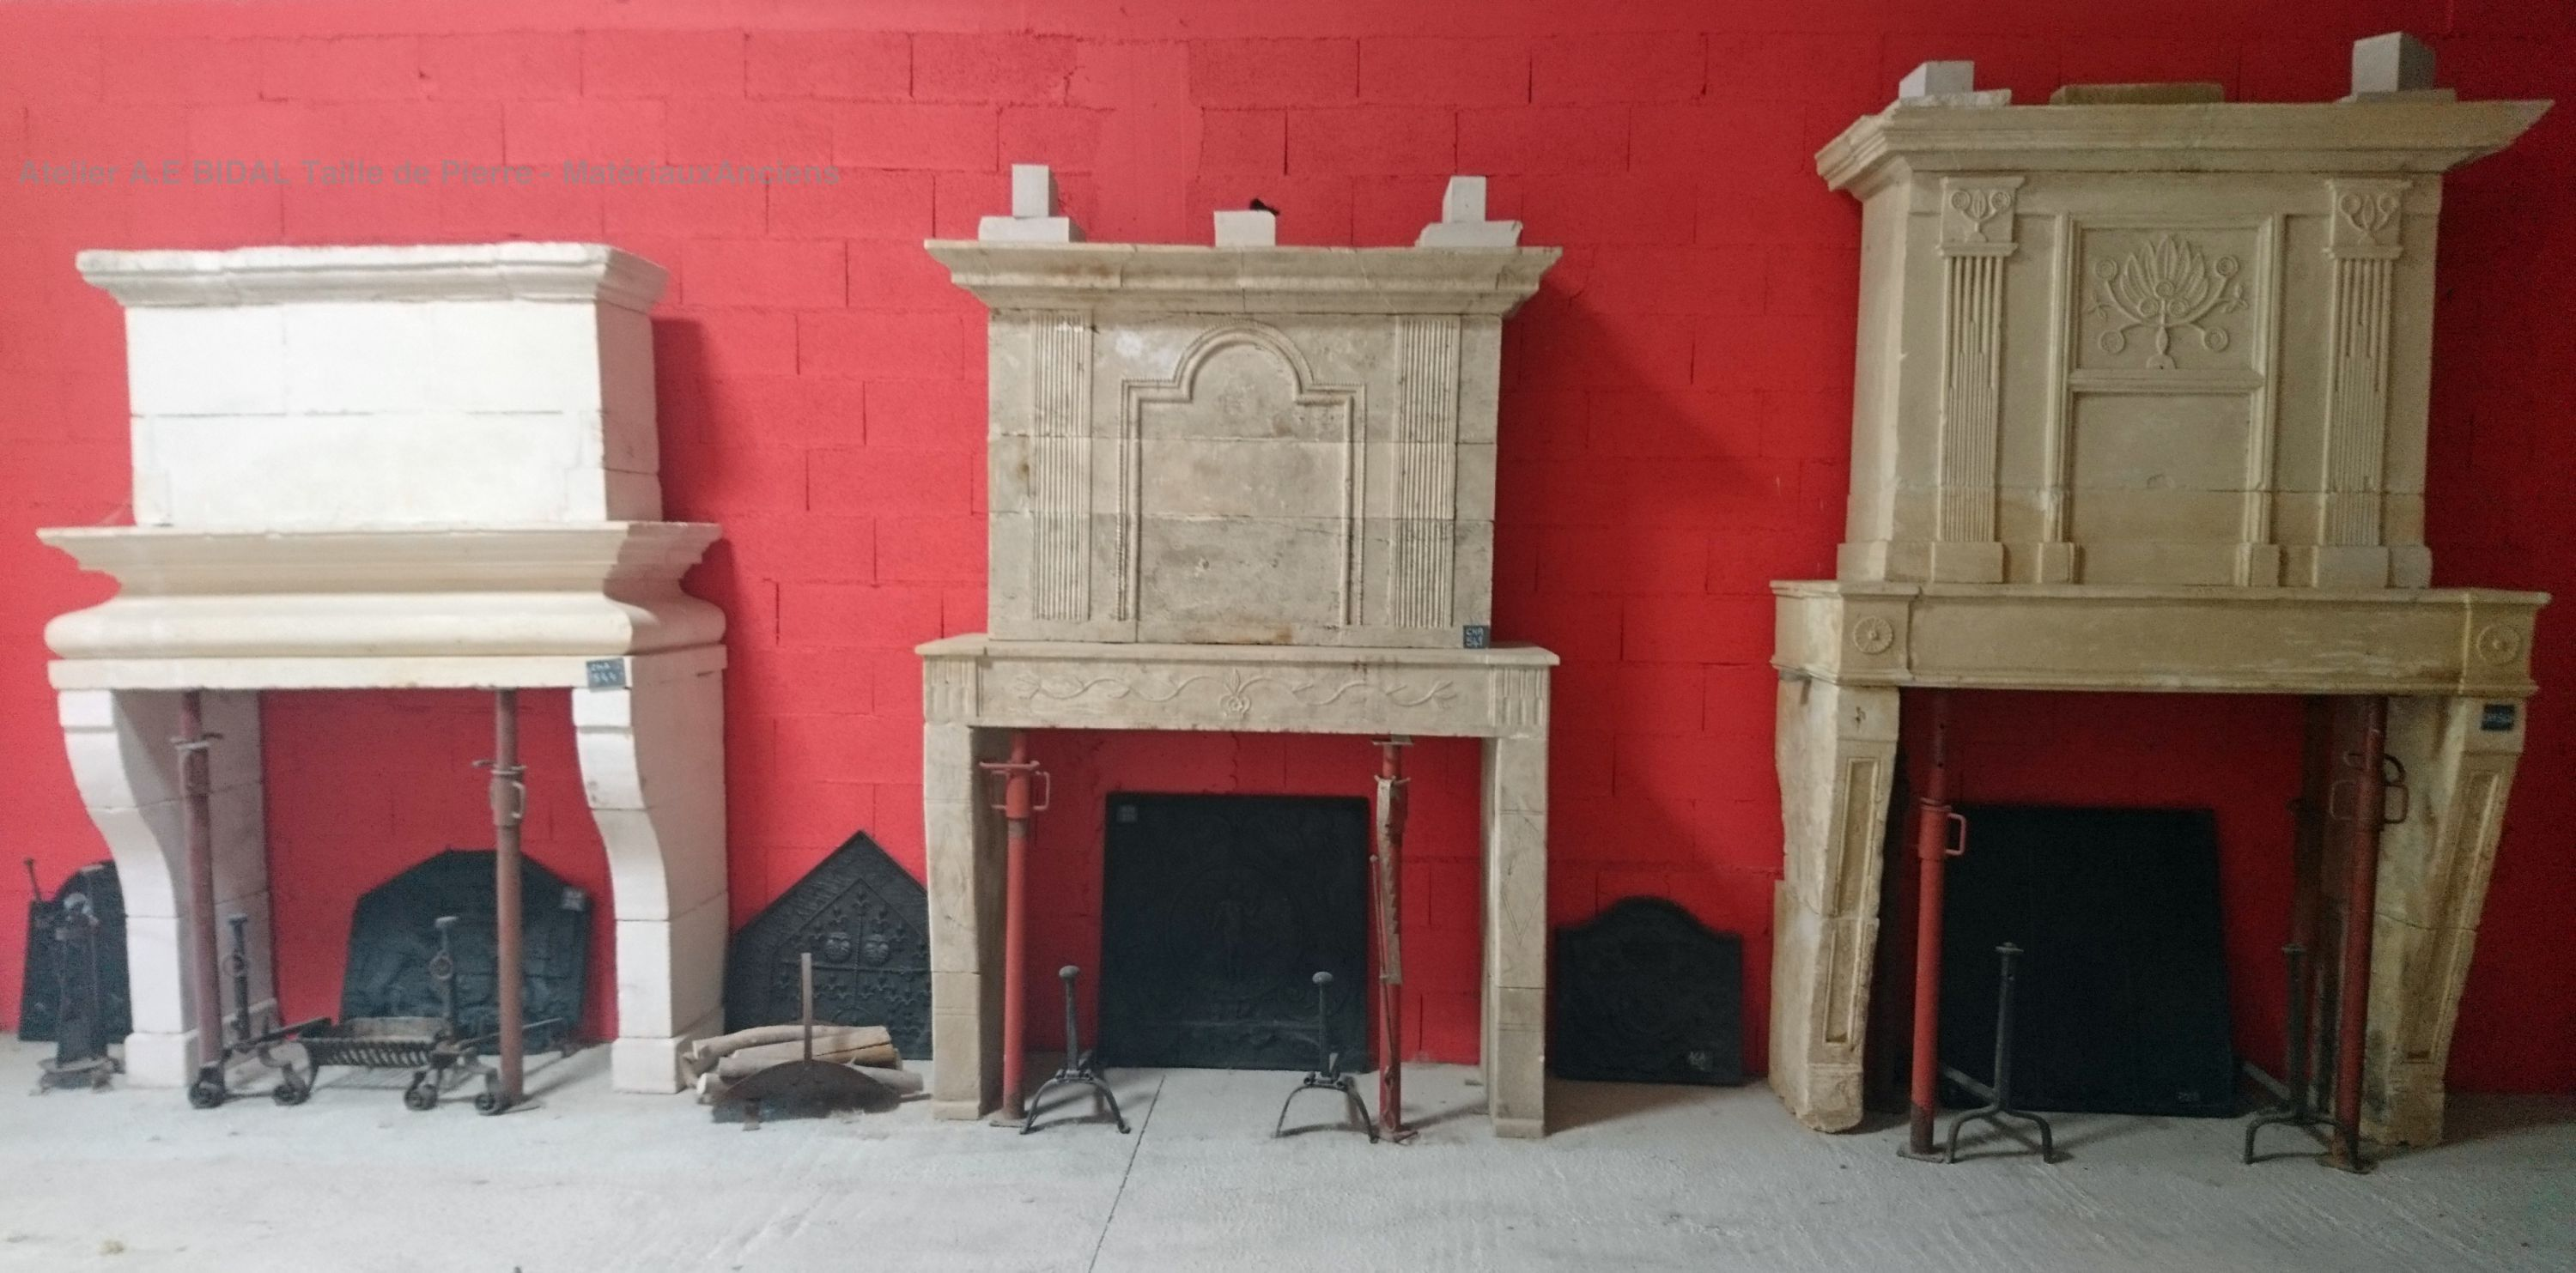 Alain Bidal alain bidal offers a very large choice of antique fireplaces in stone.